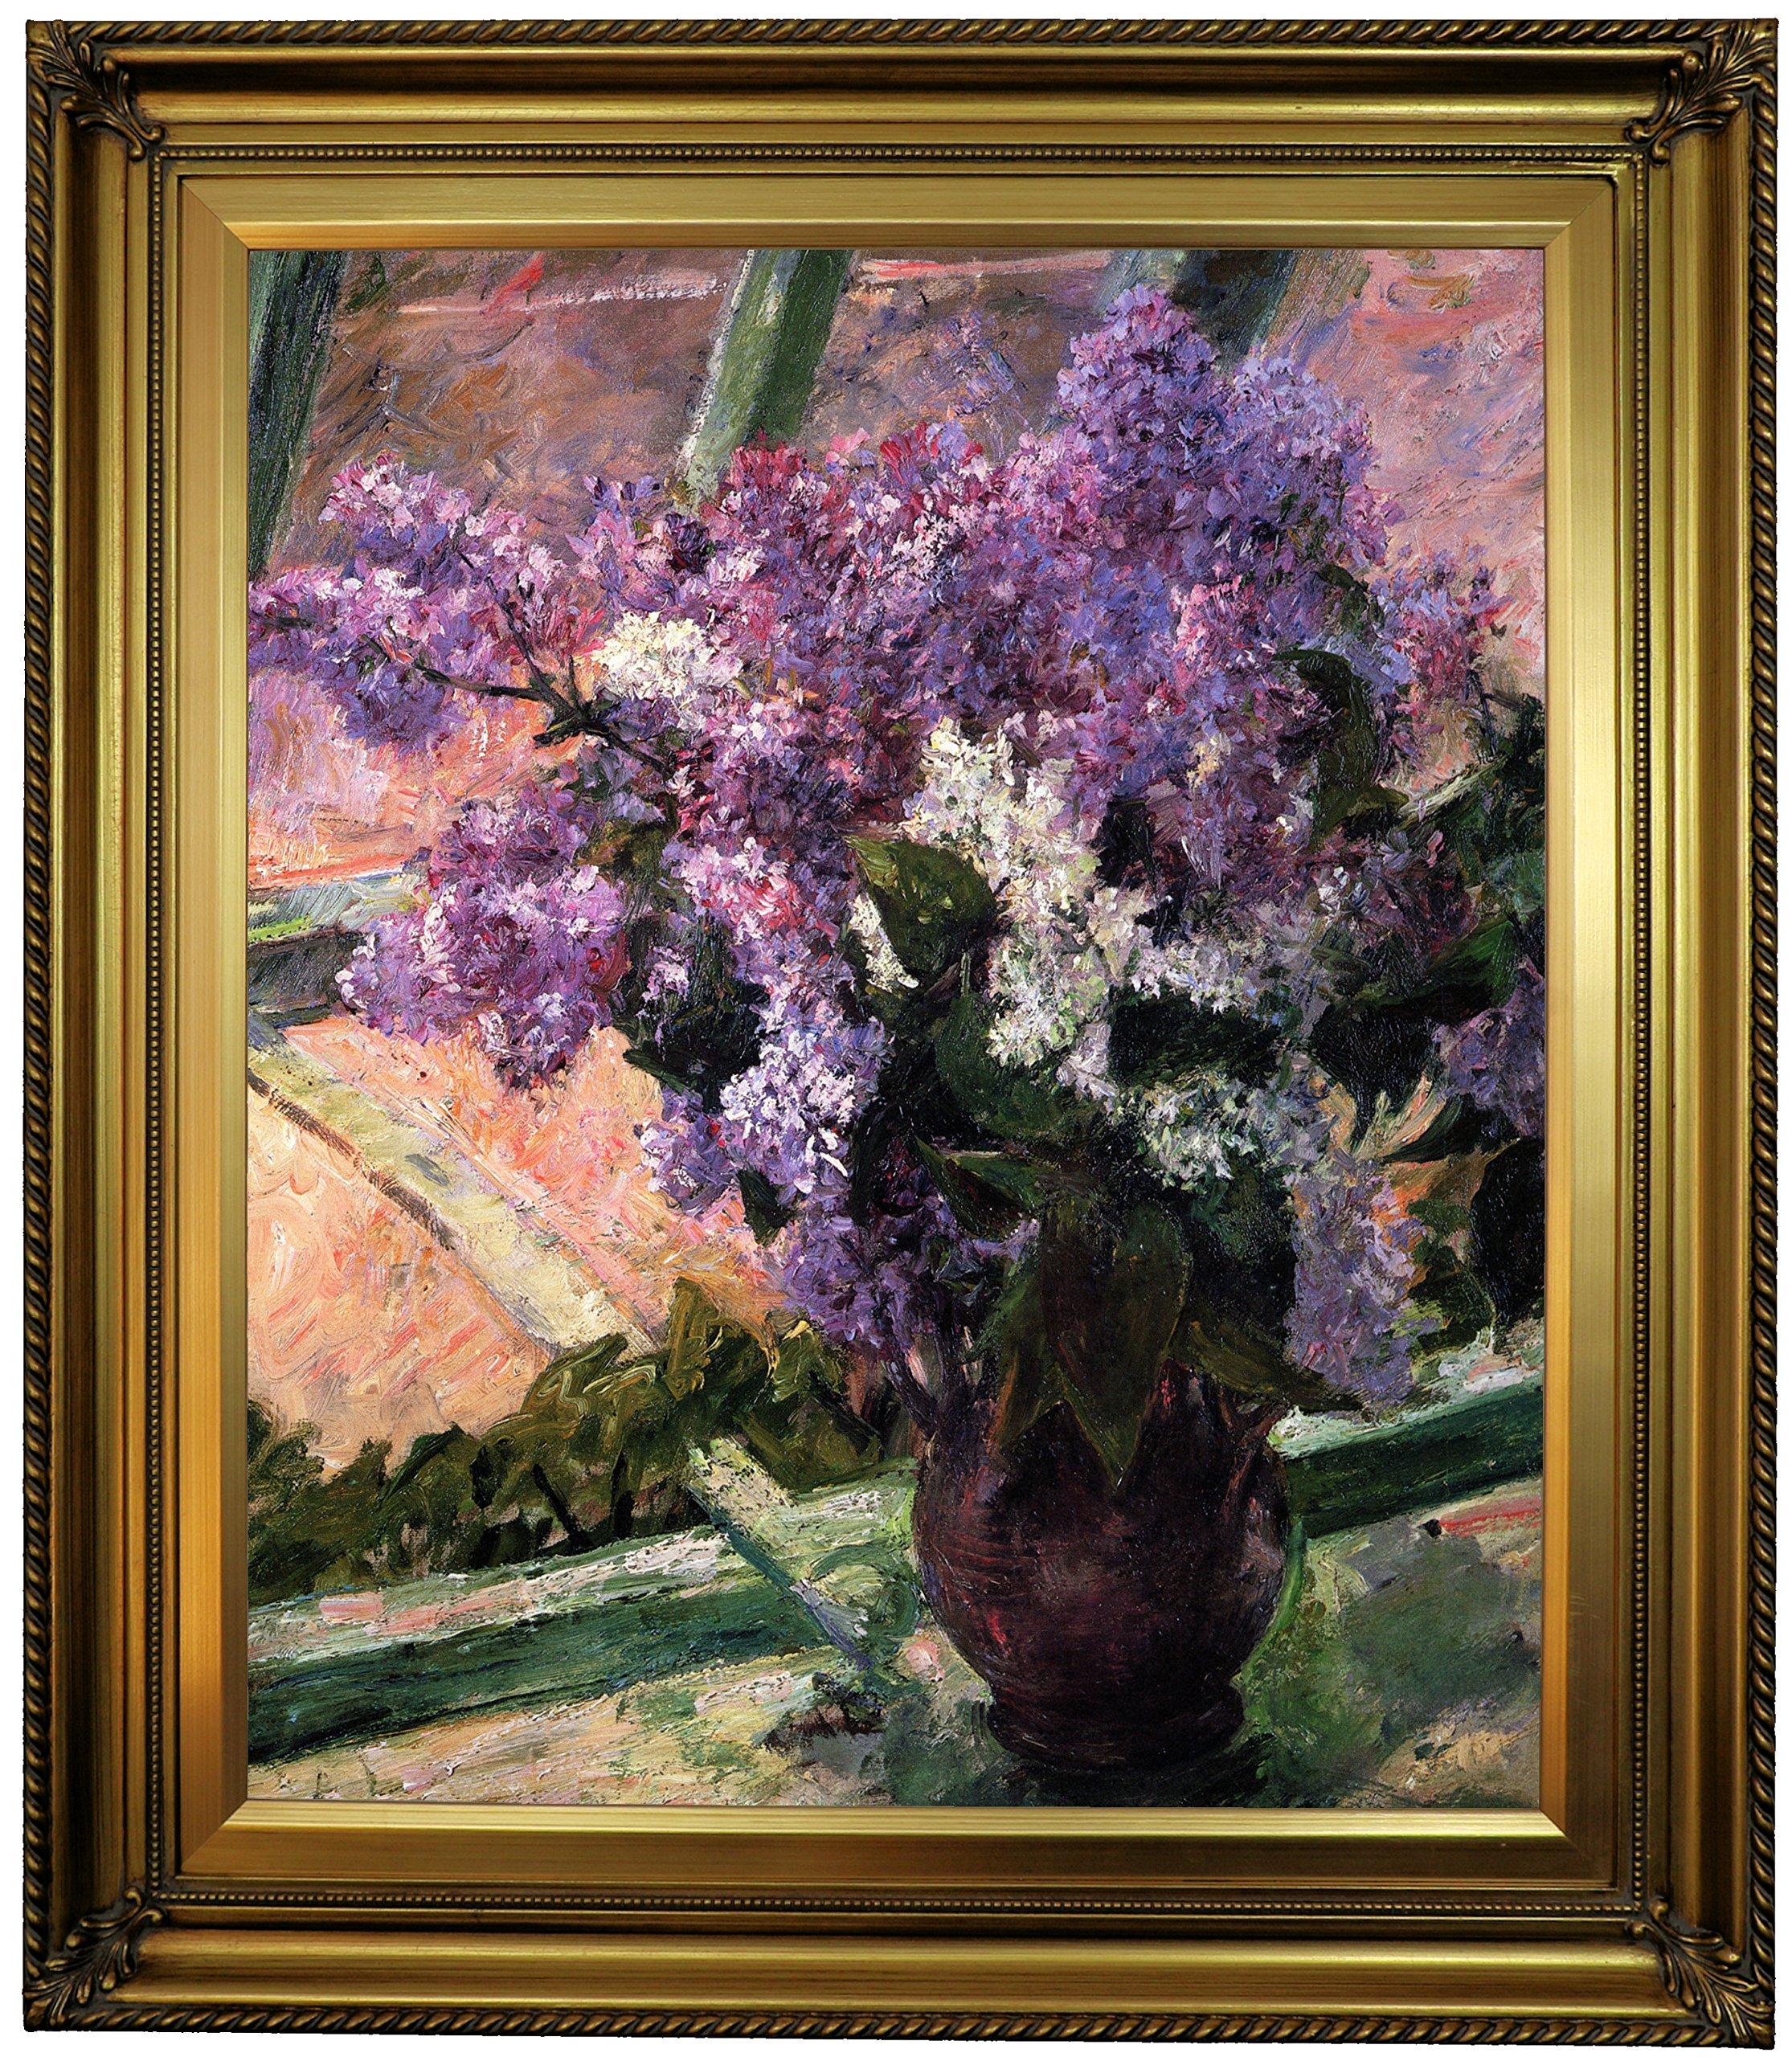 Historic Art Gallery Lilacs in a Window 1880 by Mary Cassatt Framed Canvas Print, 20'' x 24'', Gold Leaf